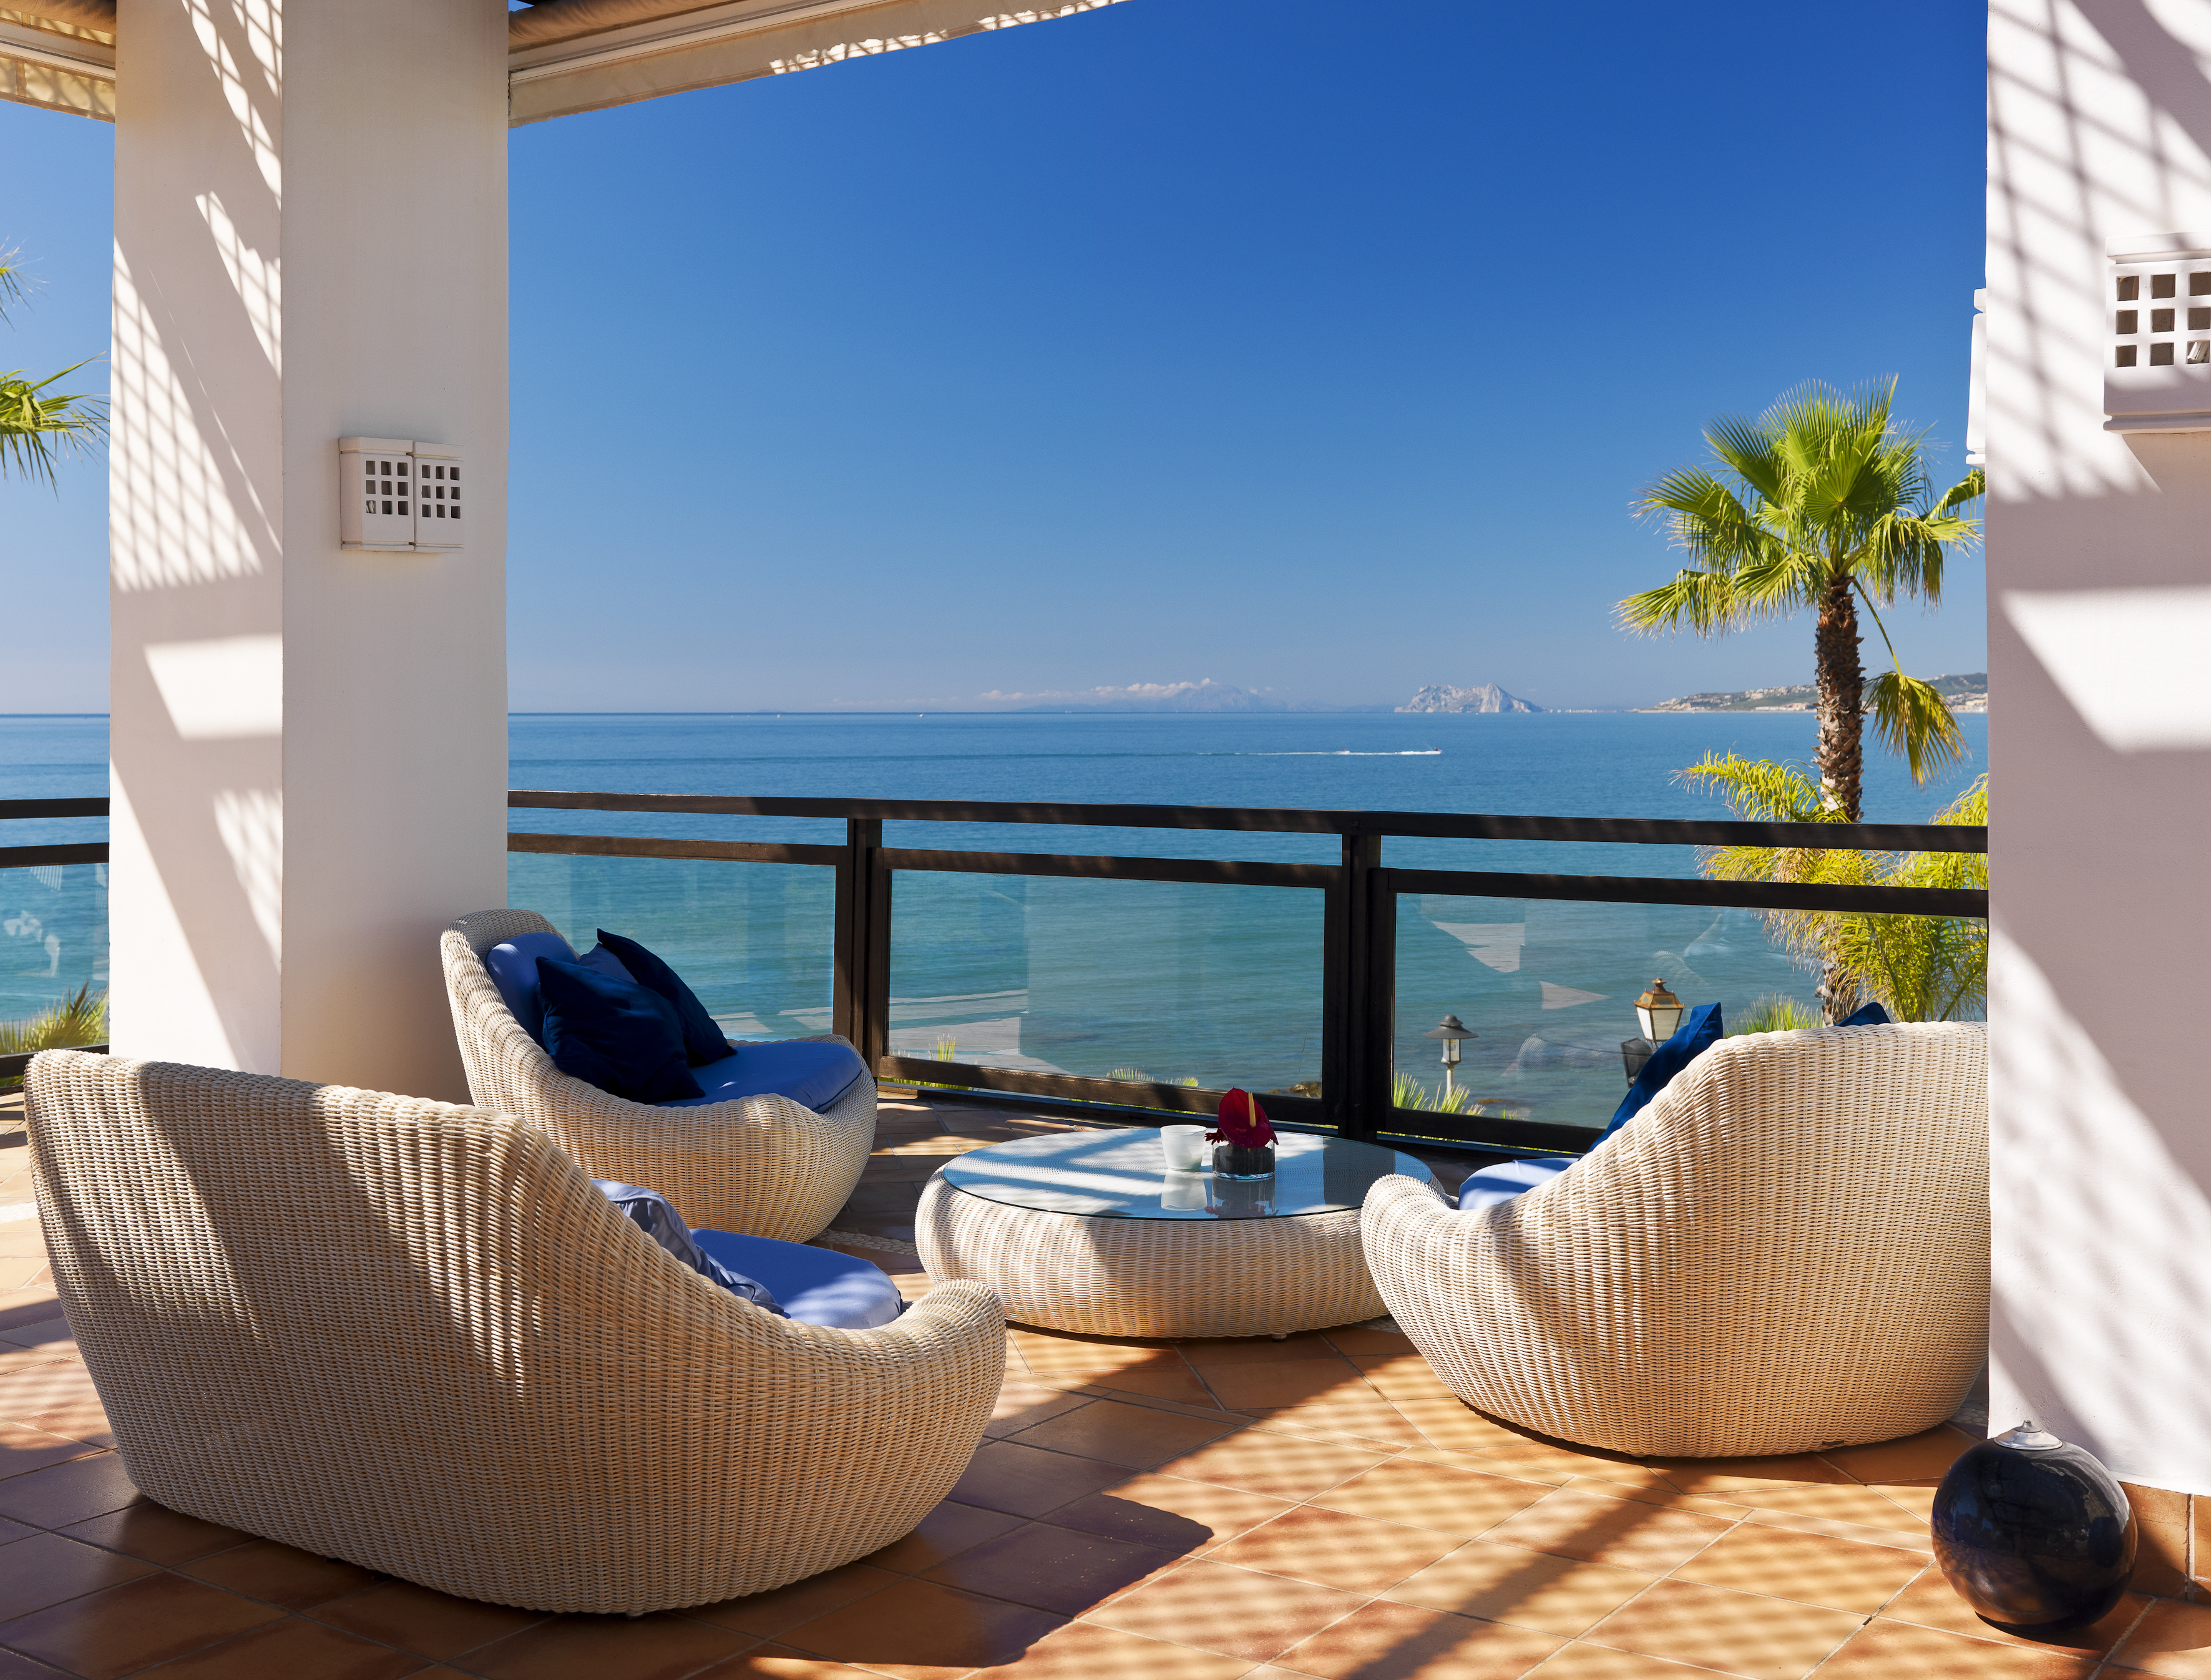 Hotel h10 estepona palace ulrika golf villas for Hotels on the terrace